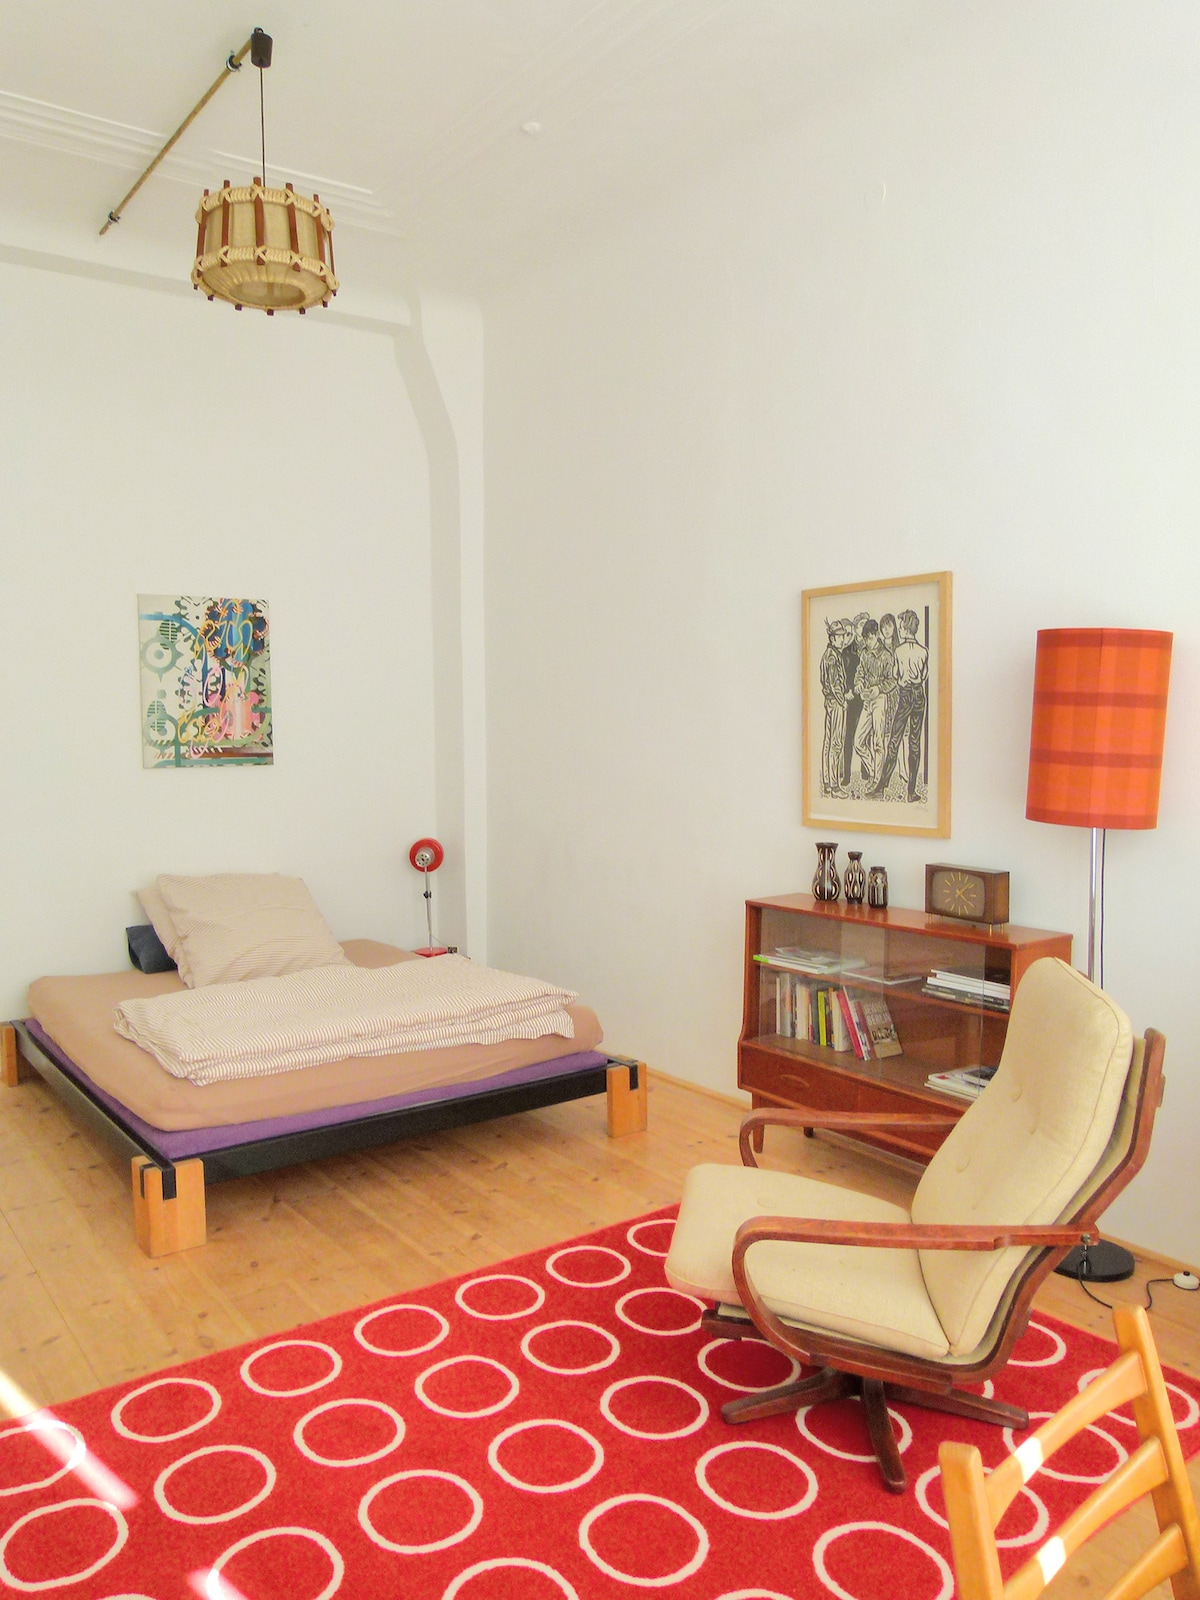 Large, comfortable bed, real art and fine design.